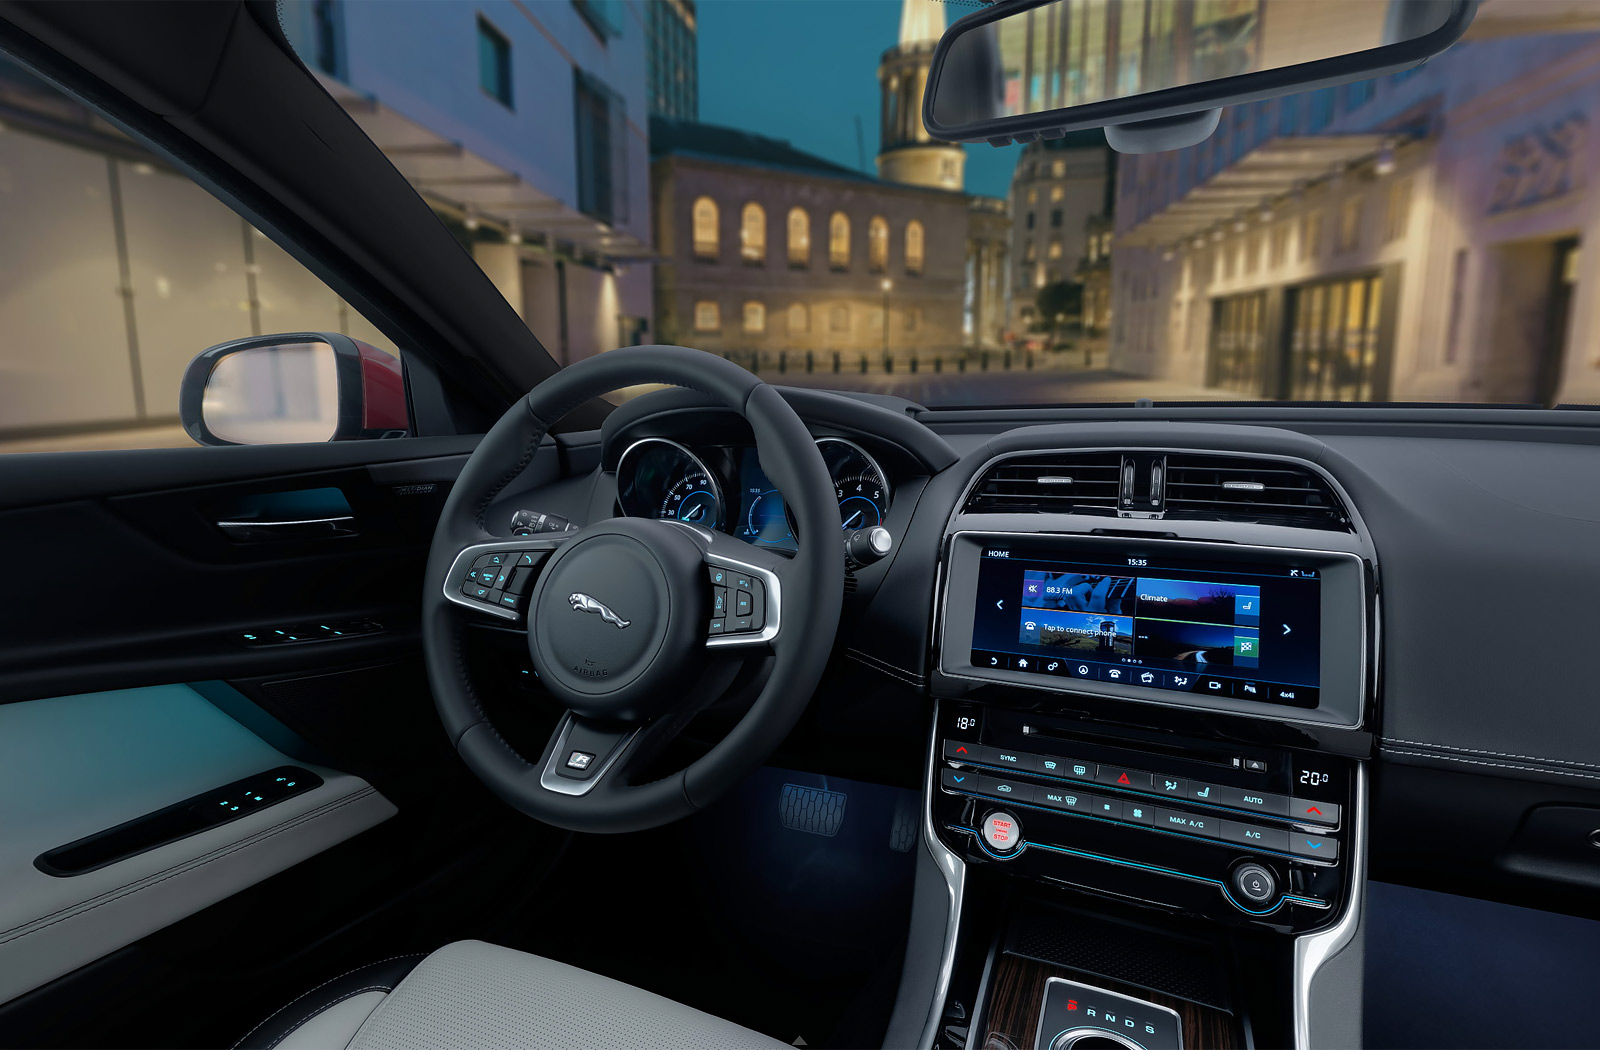 Jaguar XE Car Interior 360 Interactive   EYEREVOLUTION Jaguar XE Car Interior 360 Interactive